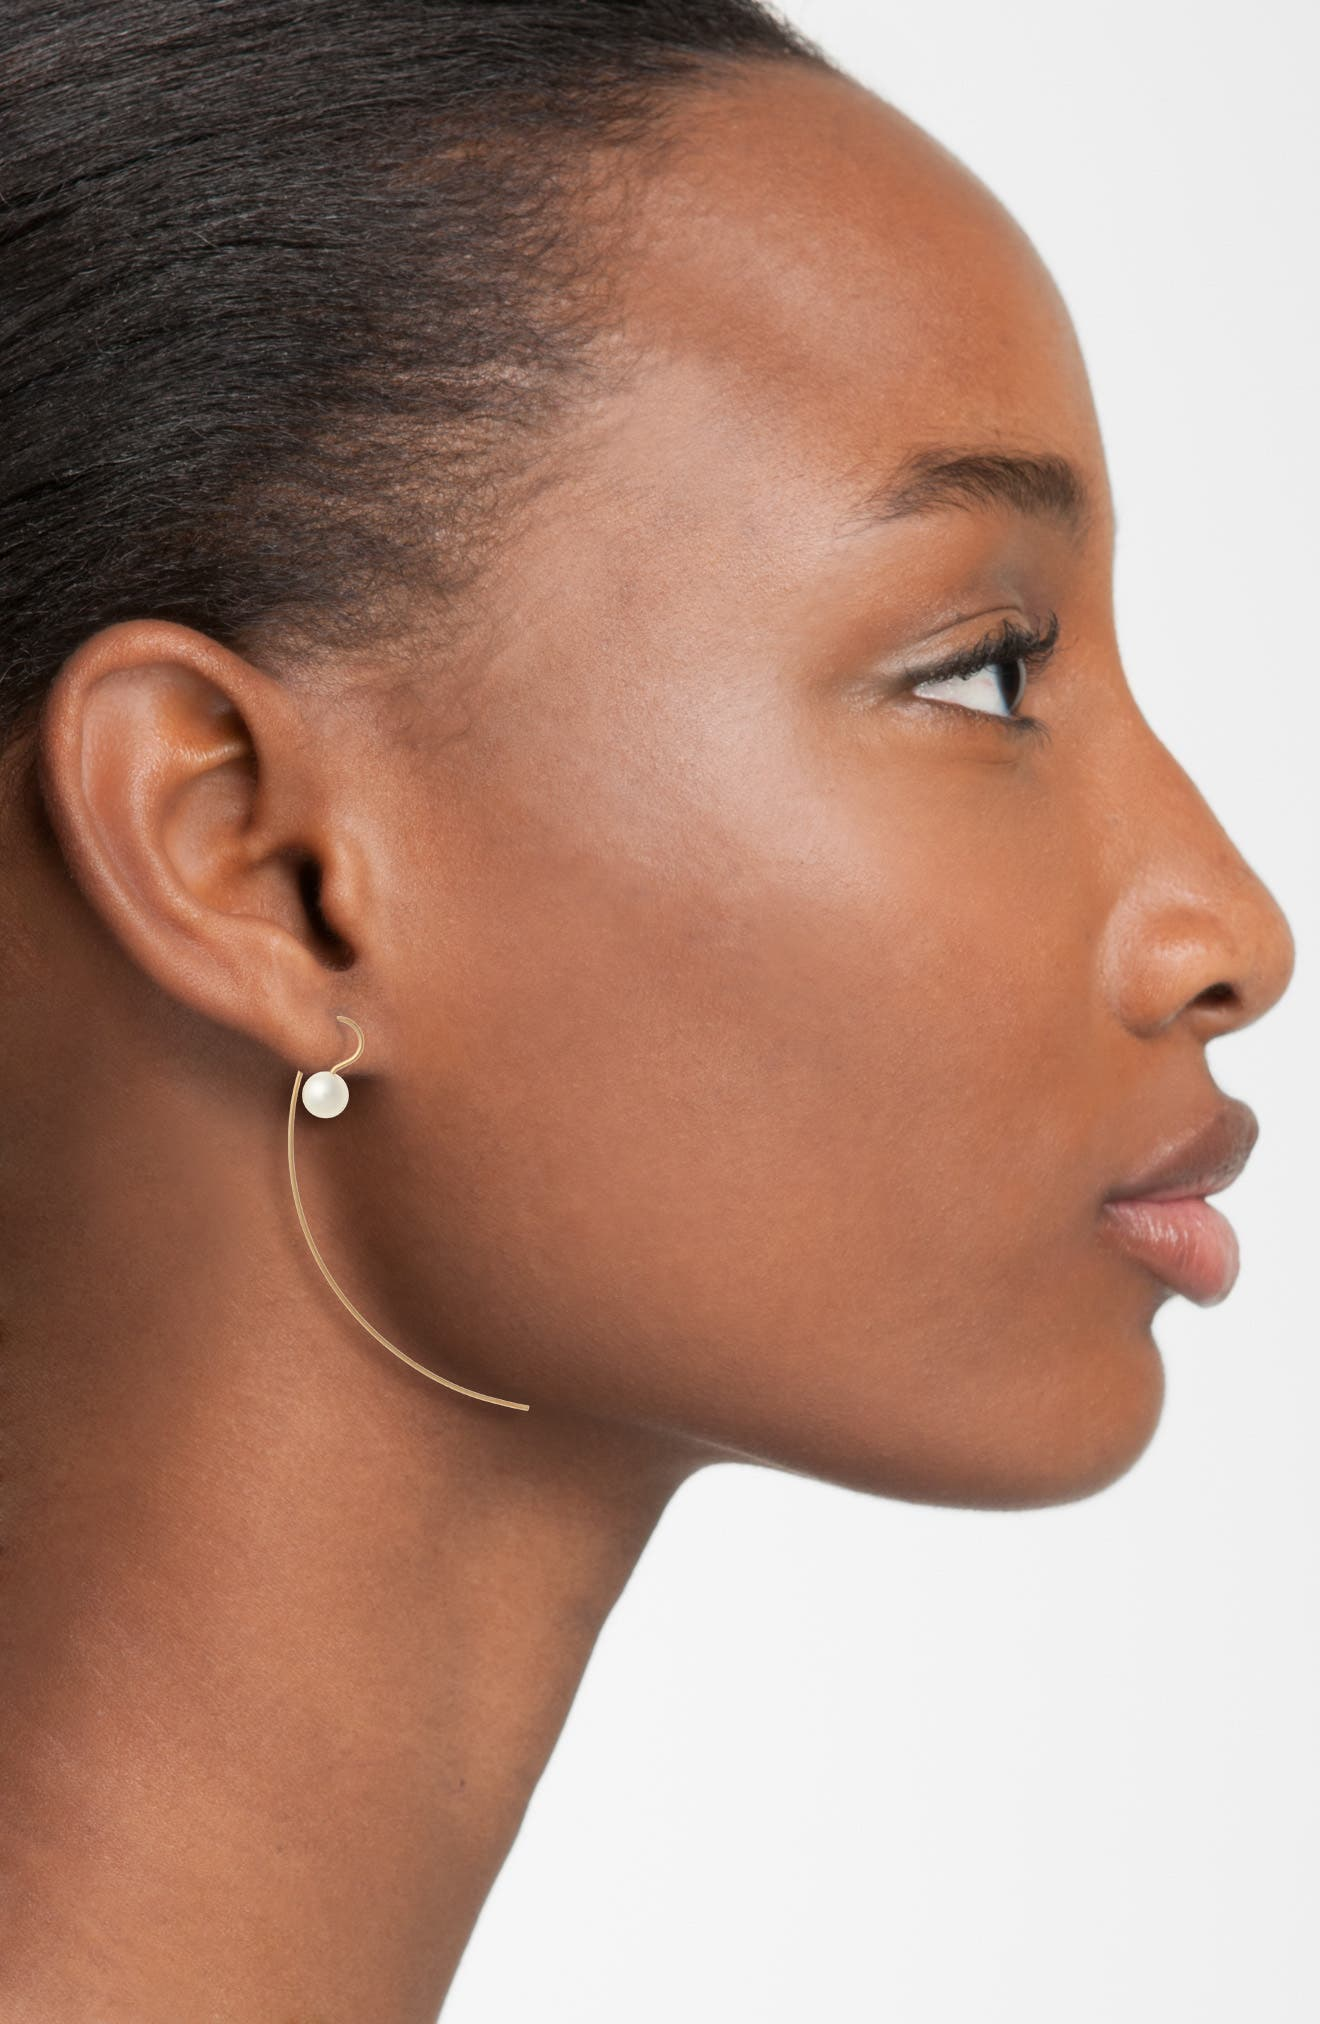 Sea of Beauty Pearl Curved Threader Earrings,                             Alternate thumbnail 2, color,                             YELLOW GOLD/ WHITE PEARL